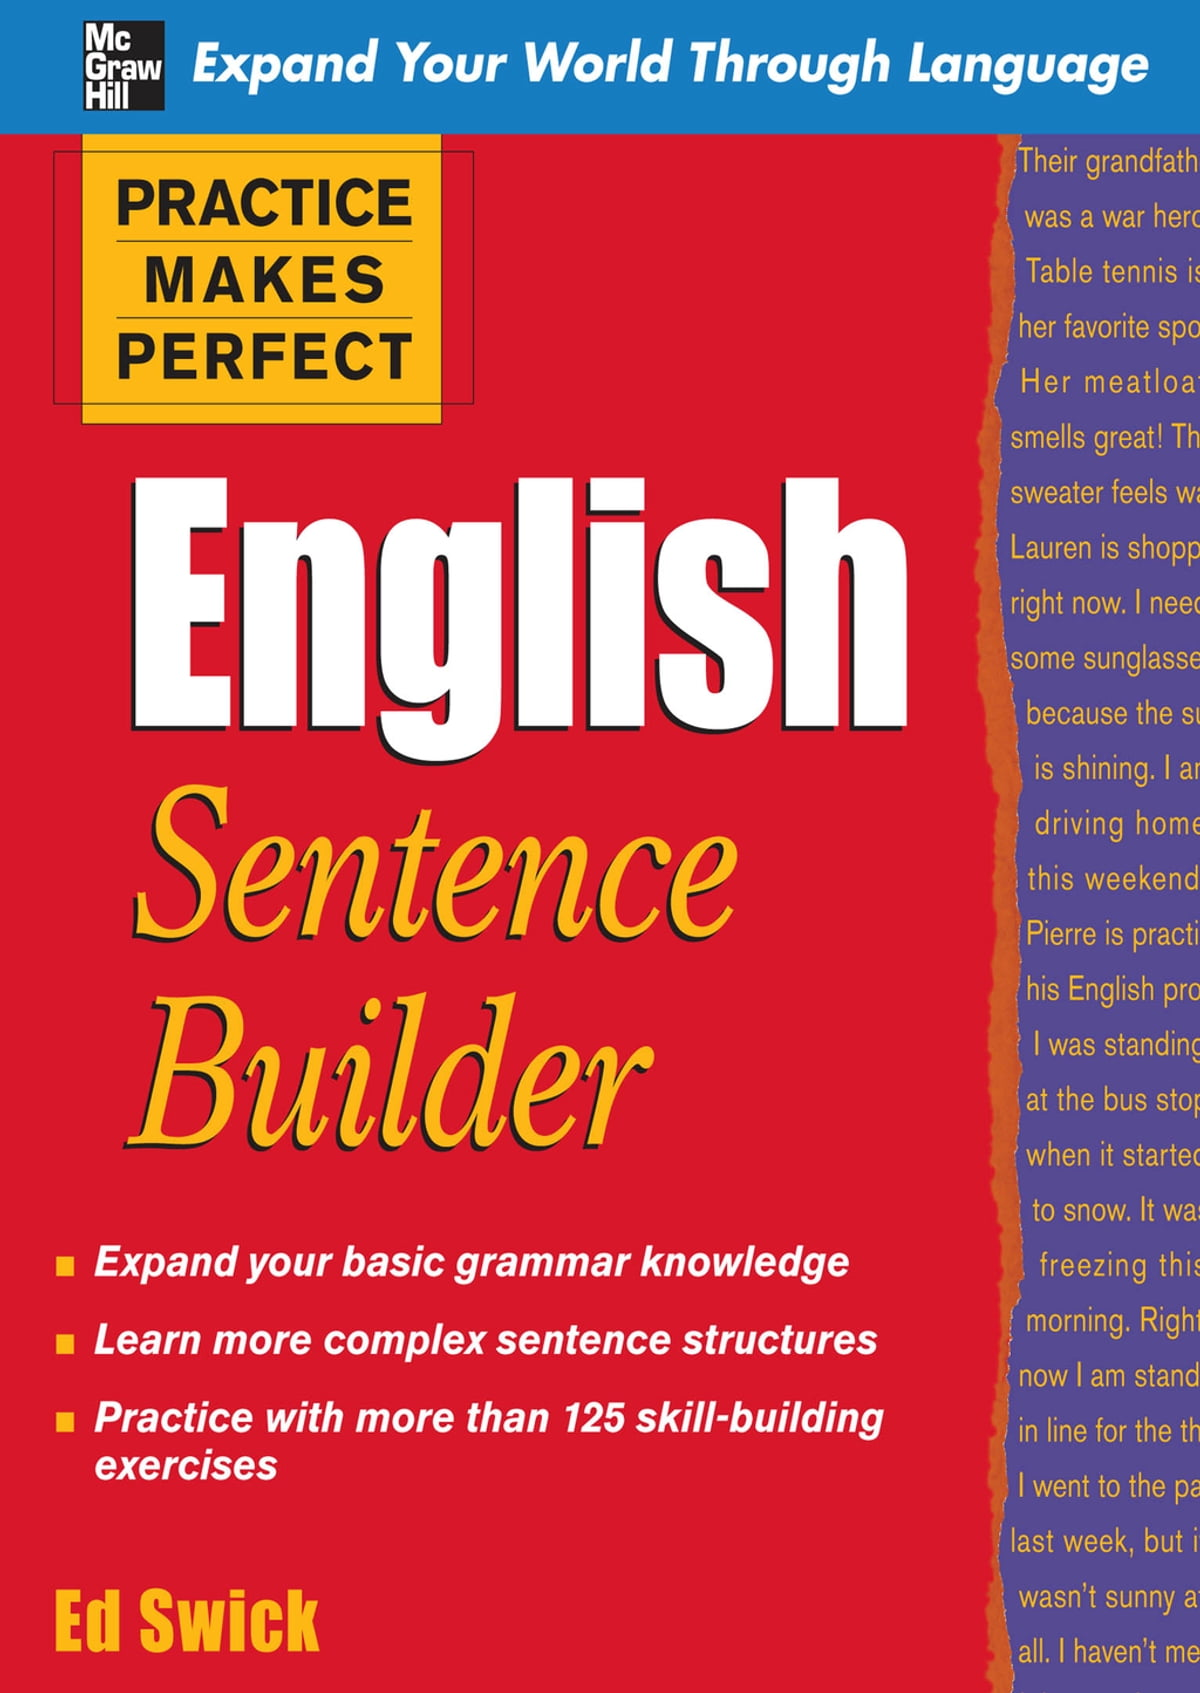 Workbooks english grammar workbook for dummies pdf free download : Practice Makes Perfect English Sentence Builder eBook by Ed Swick ...